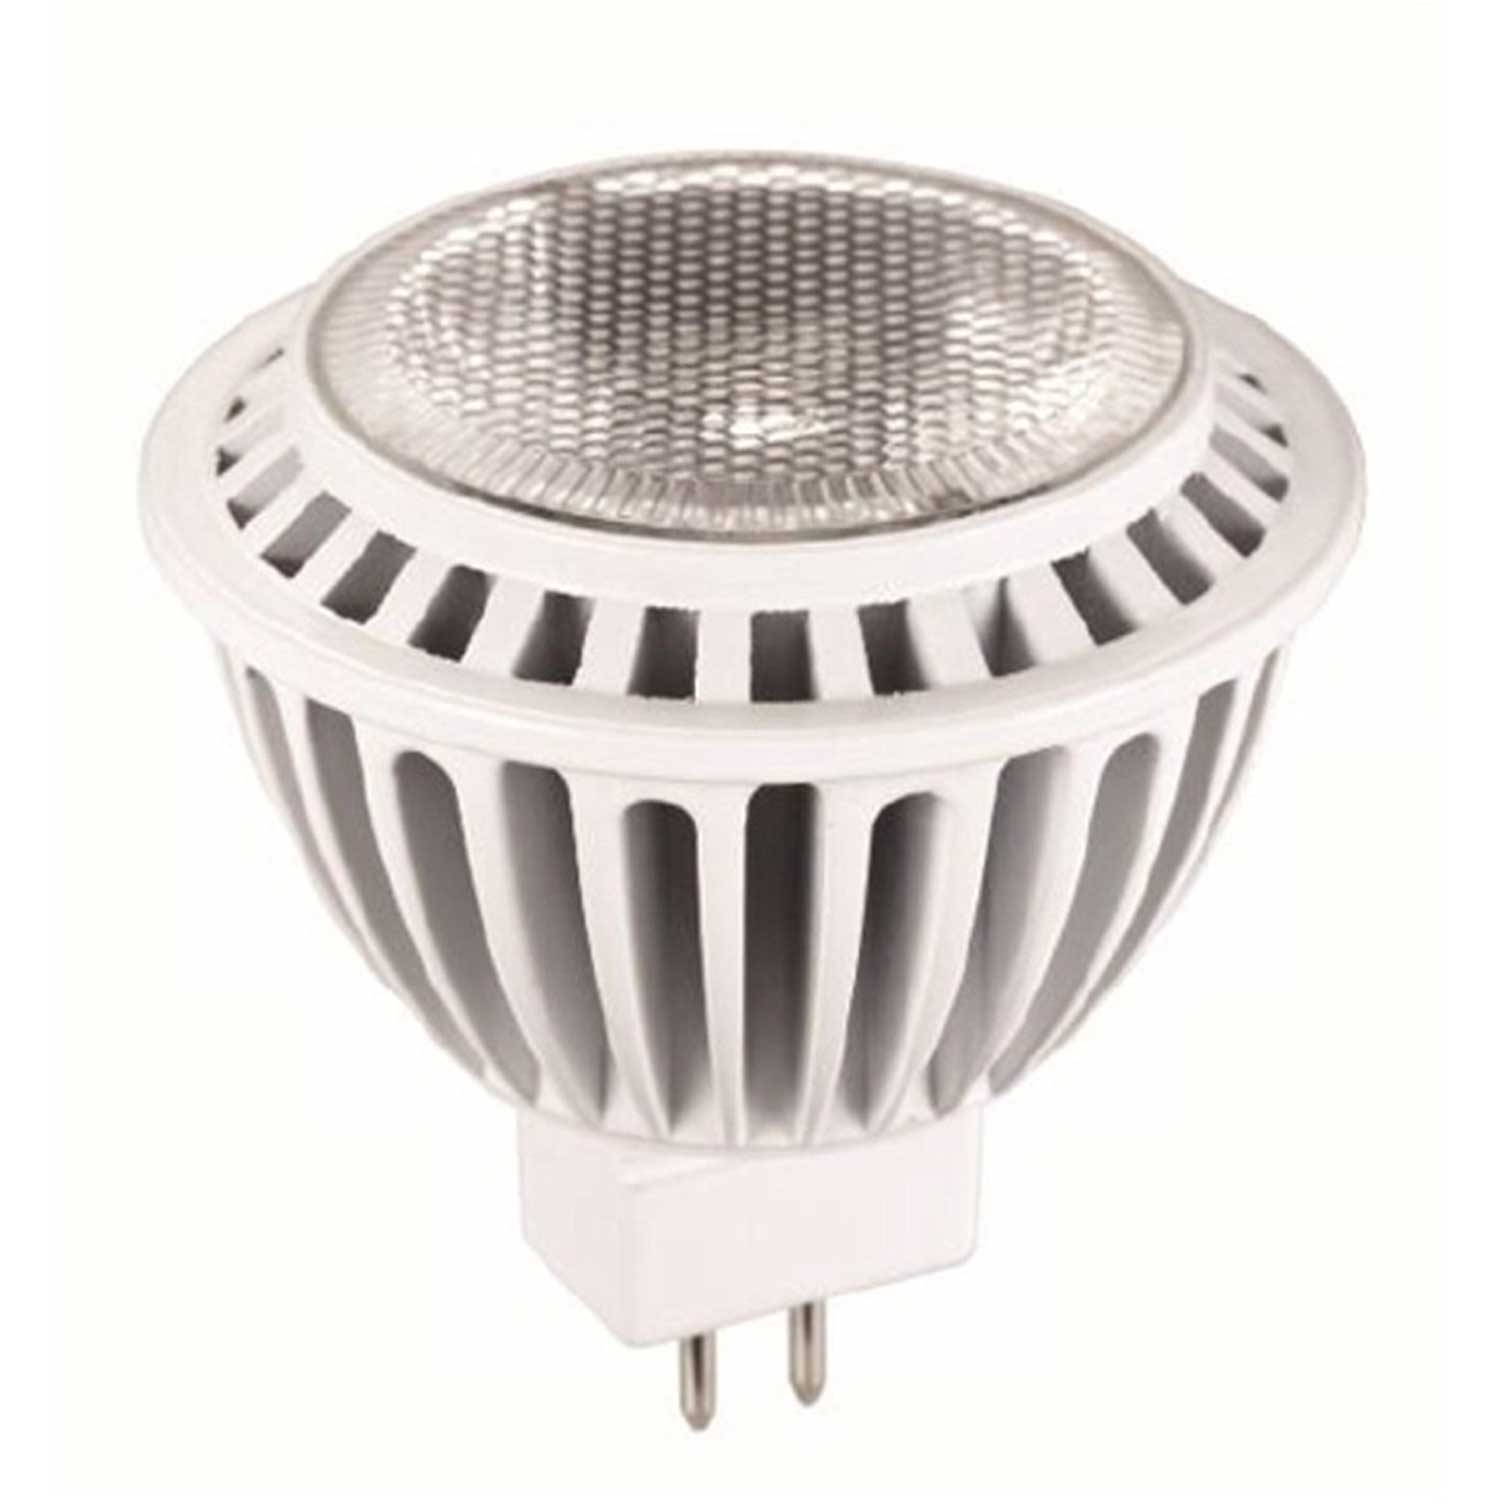 Light Efficient Design Led-4250 27K B Bulb Mr16 7W 50W